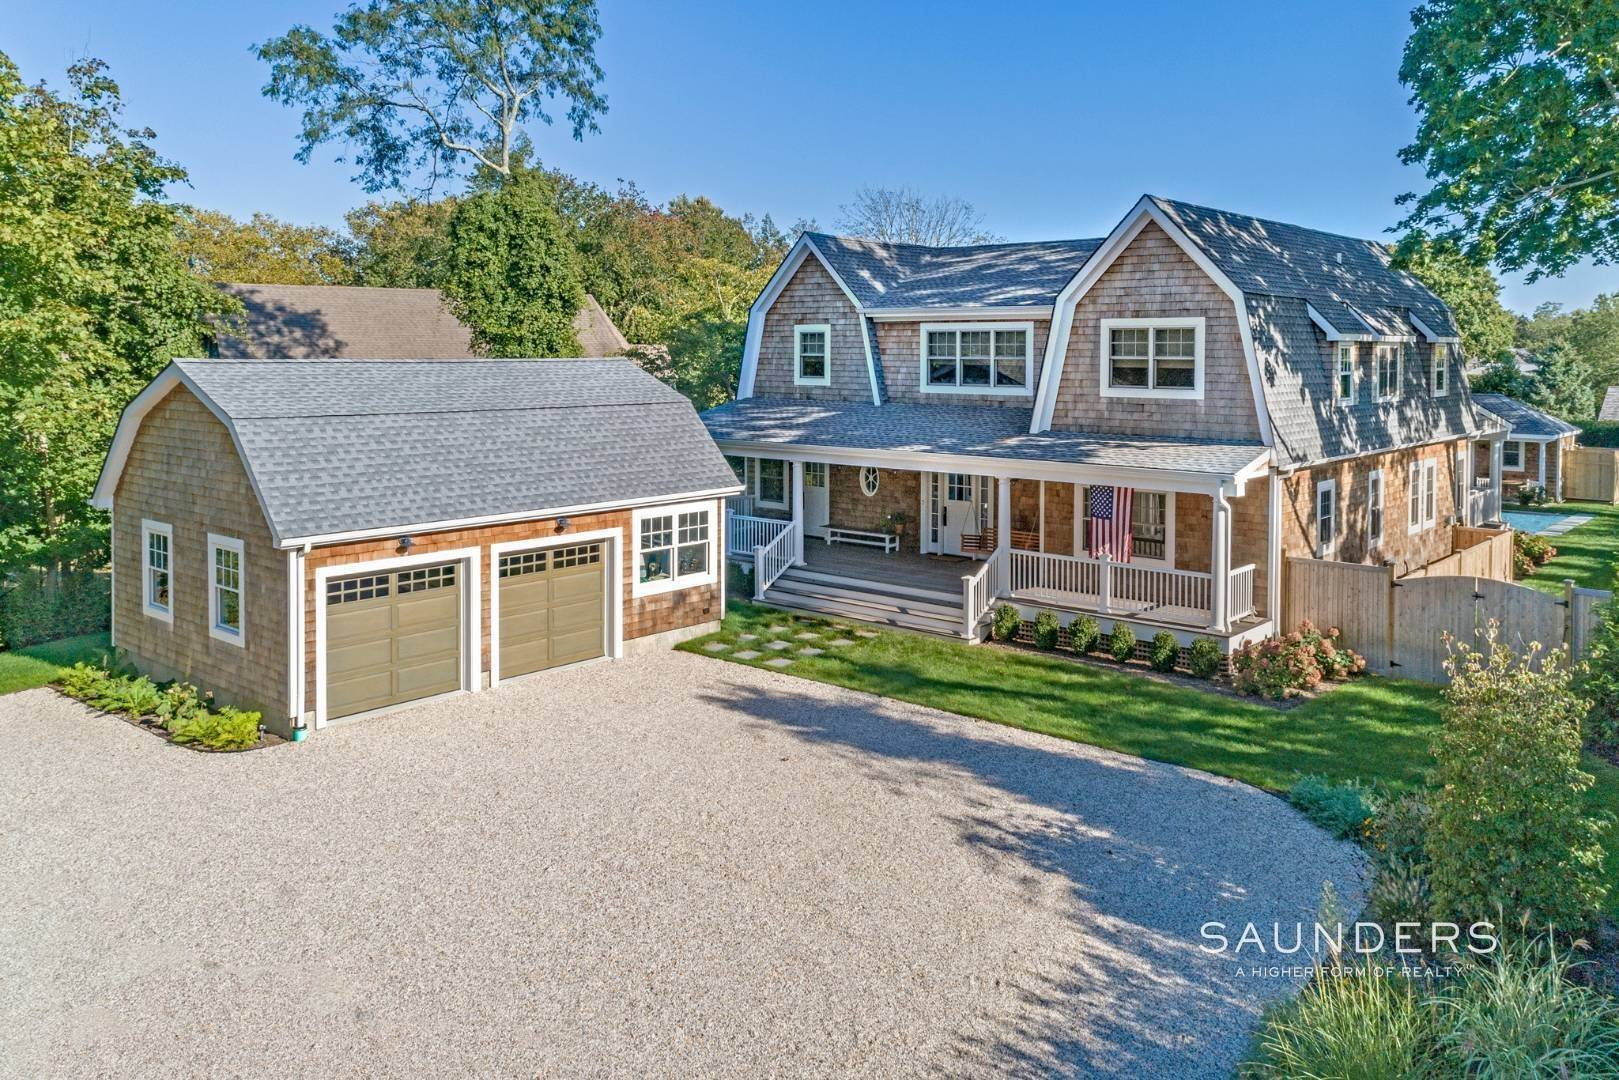 Single Family Homes for Sale at Ideally Located In Amagansett Village Near To Ocean Beaches 114 Montauk Highway, Amagansett, East Hampton Town, NY 11930